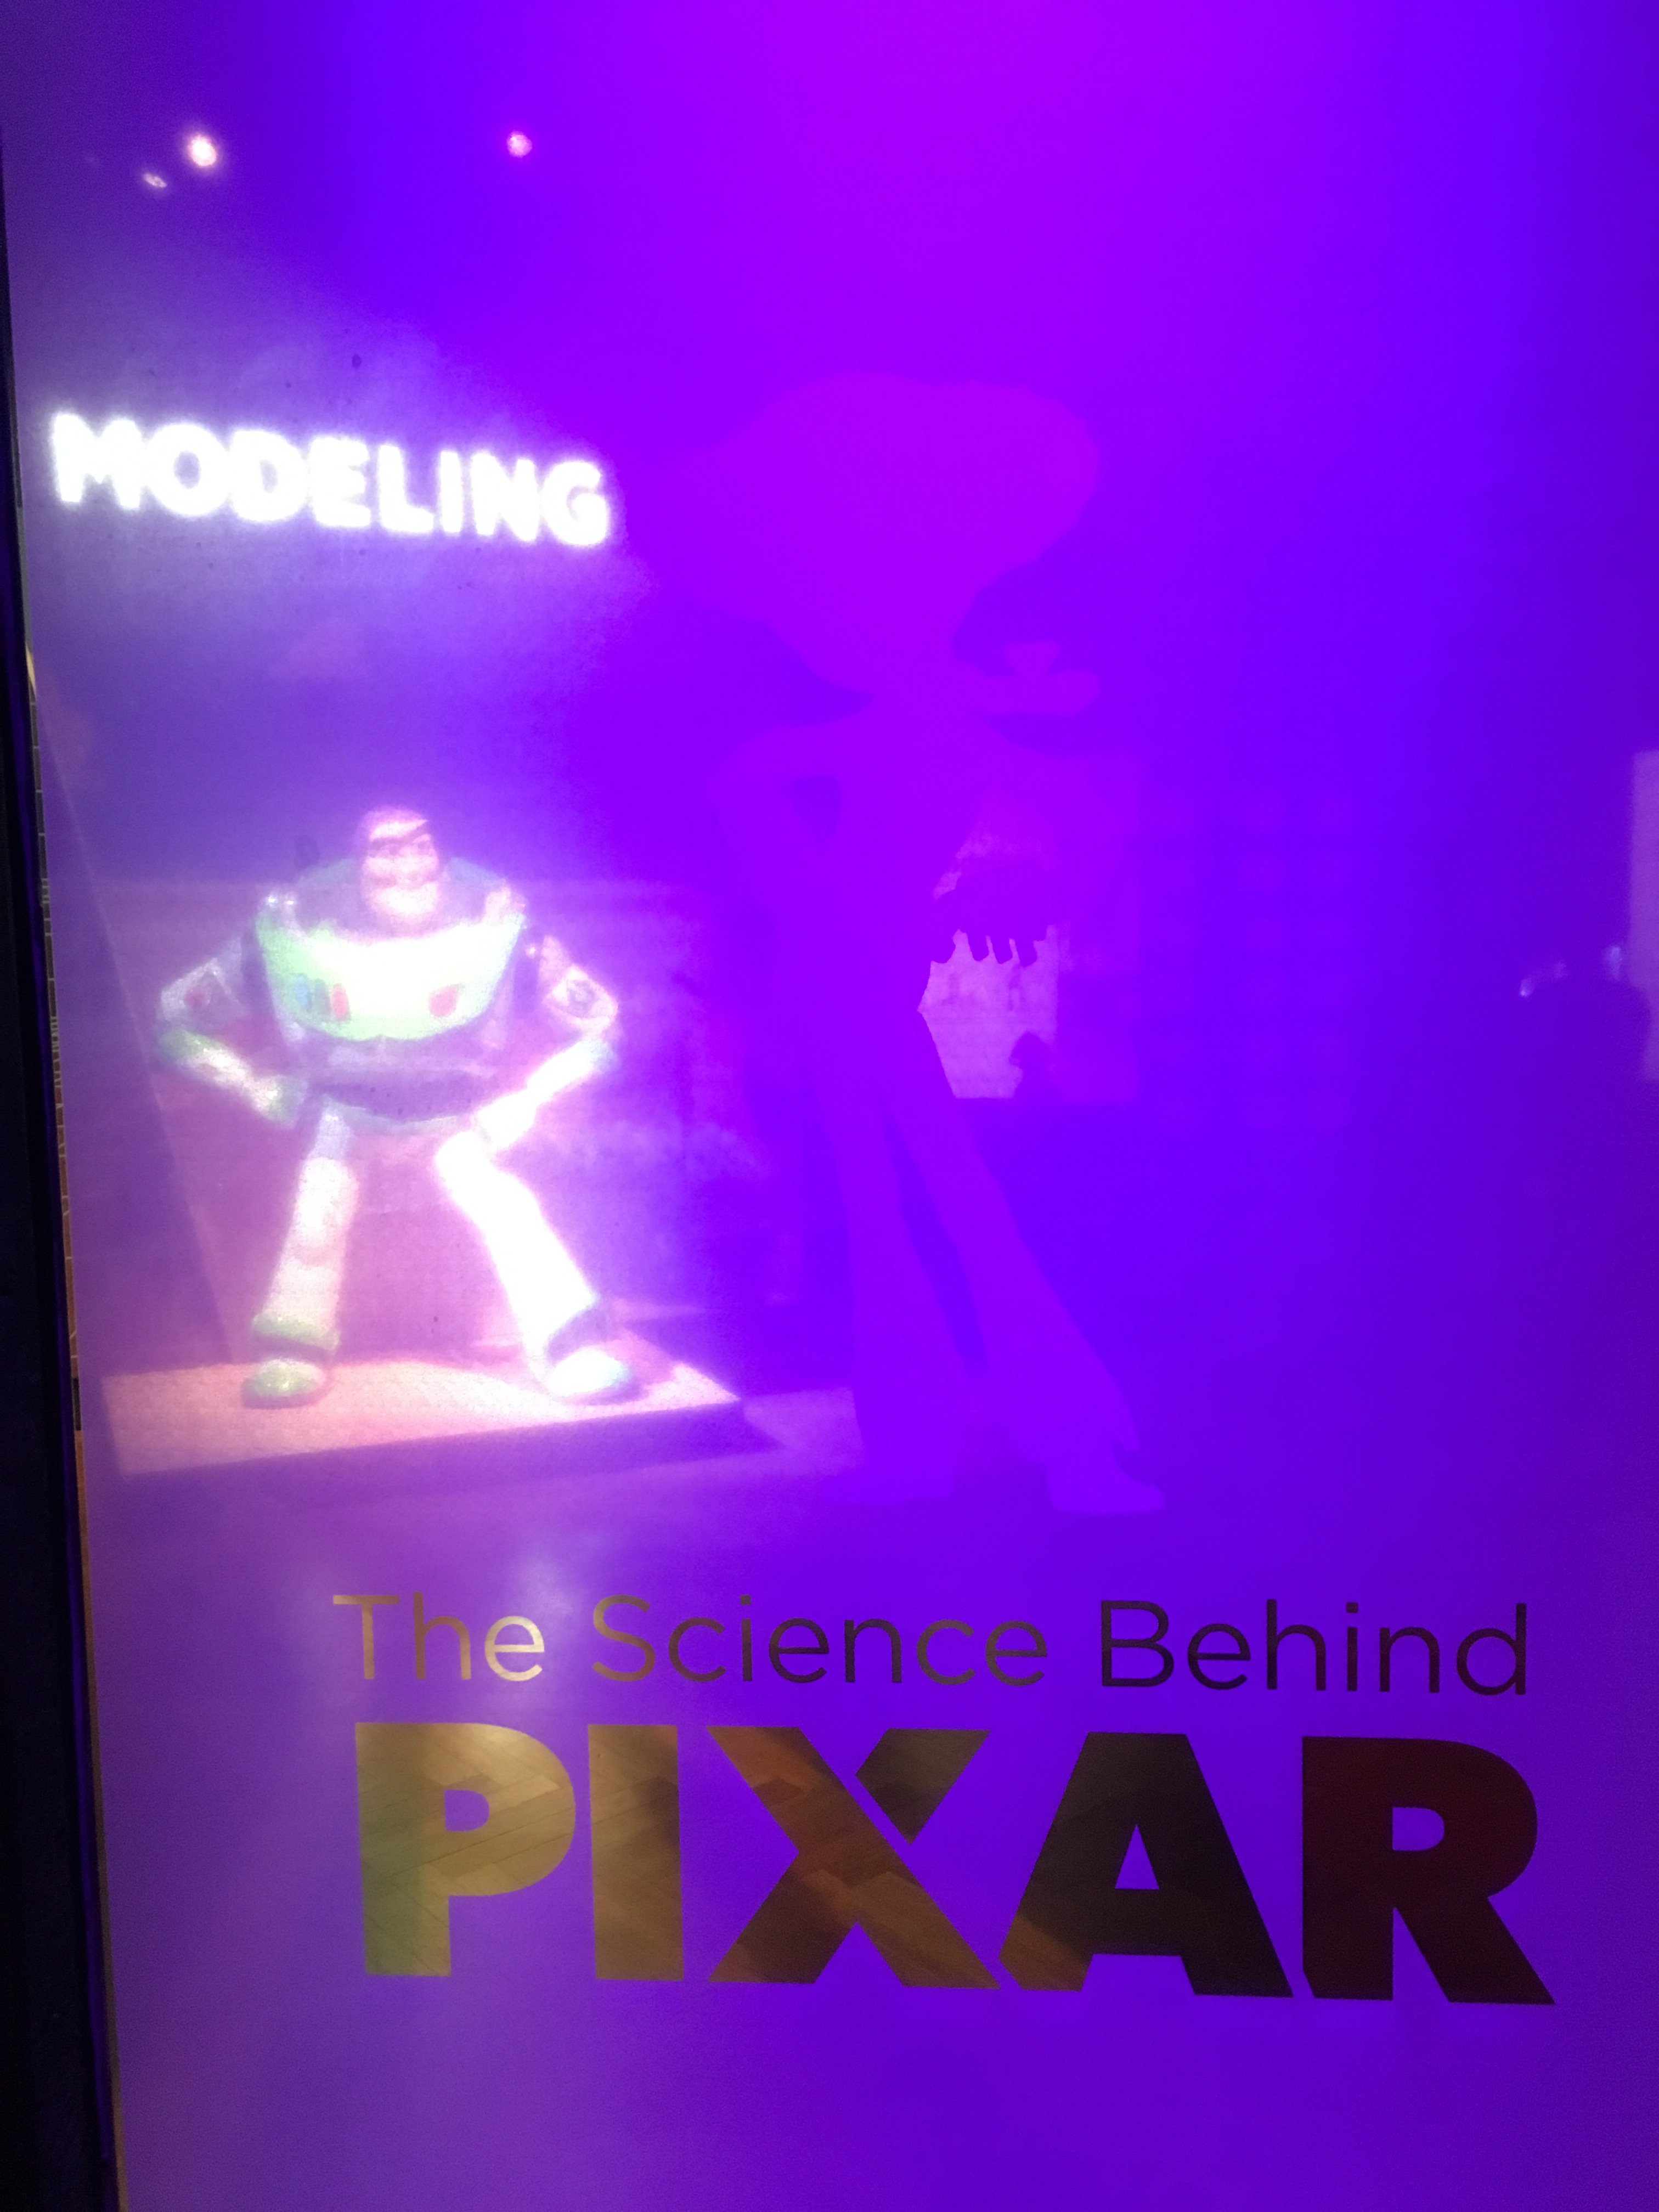 Frosted glass door that says The Science Behind Pixar with a statuette of Buzz Lightyear visible behind it